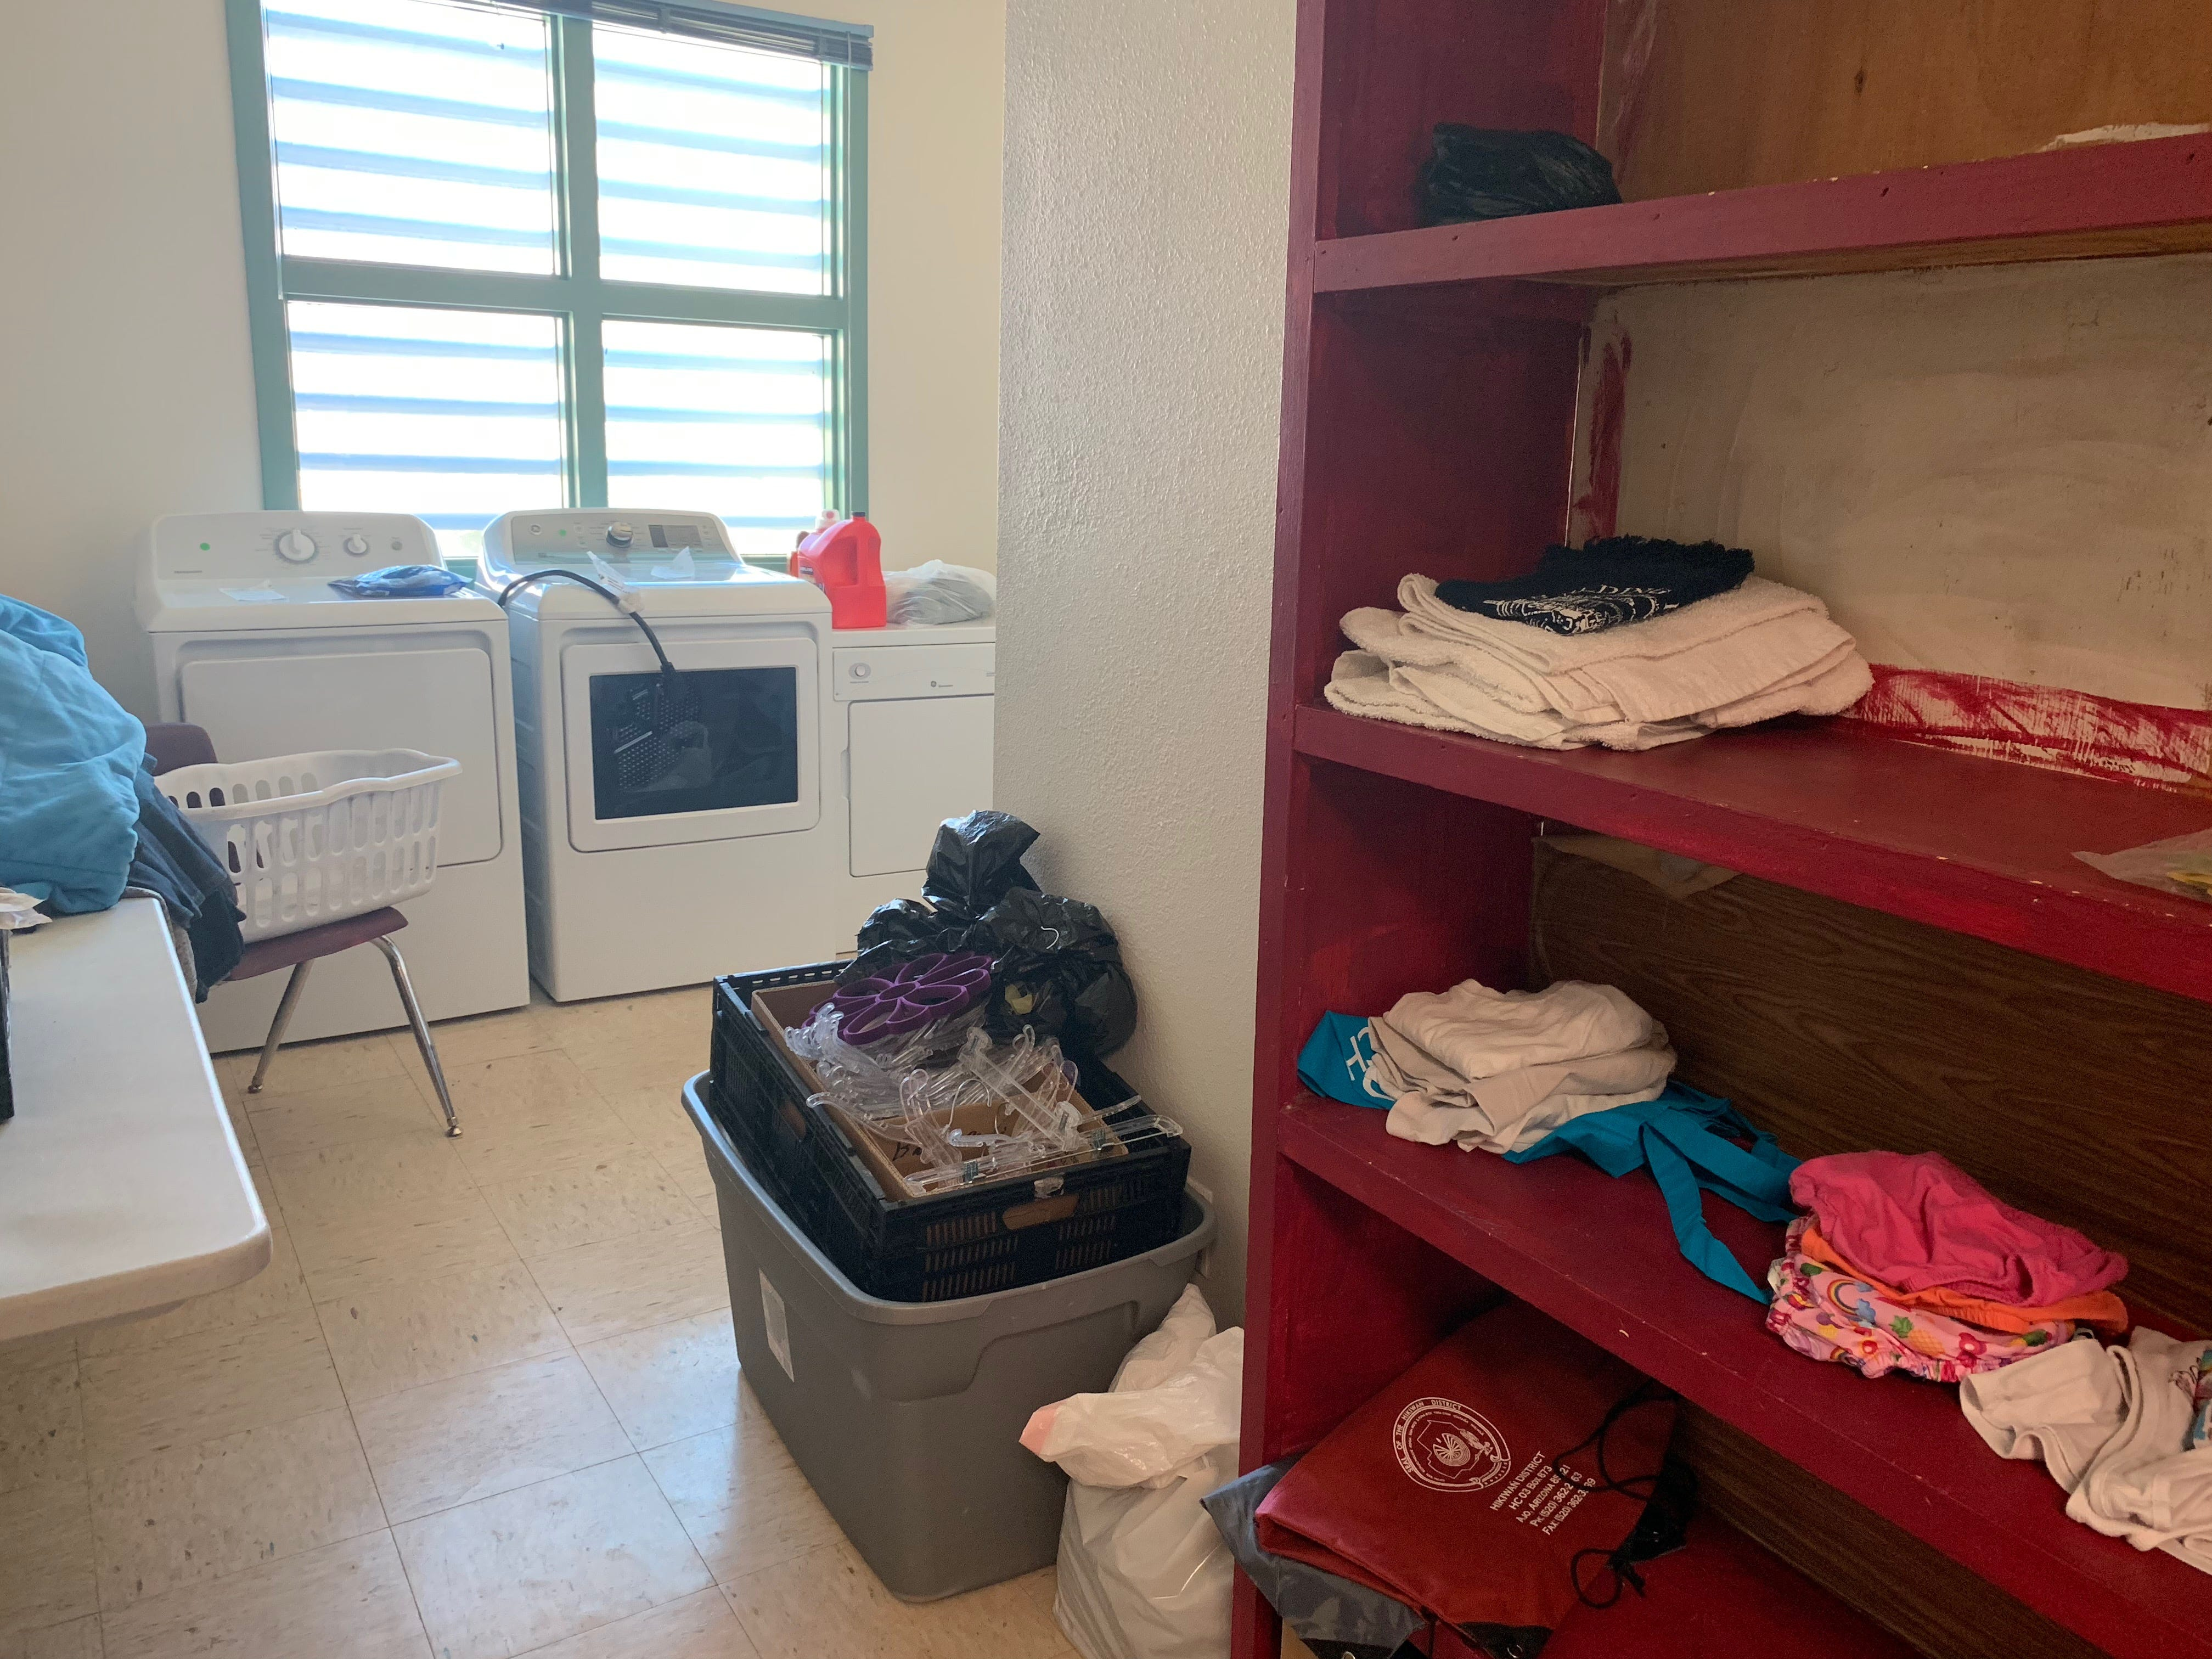 Students who struggle with attendance because of dirty clothes can have their clothes washed while at school.